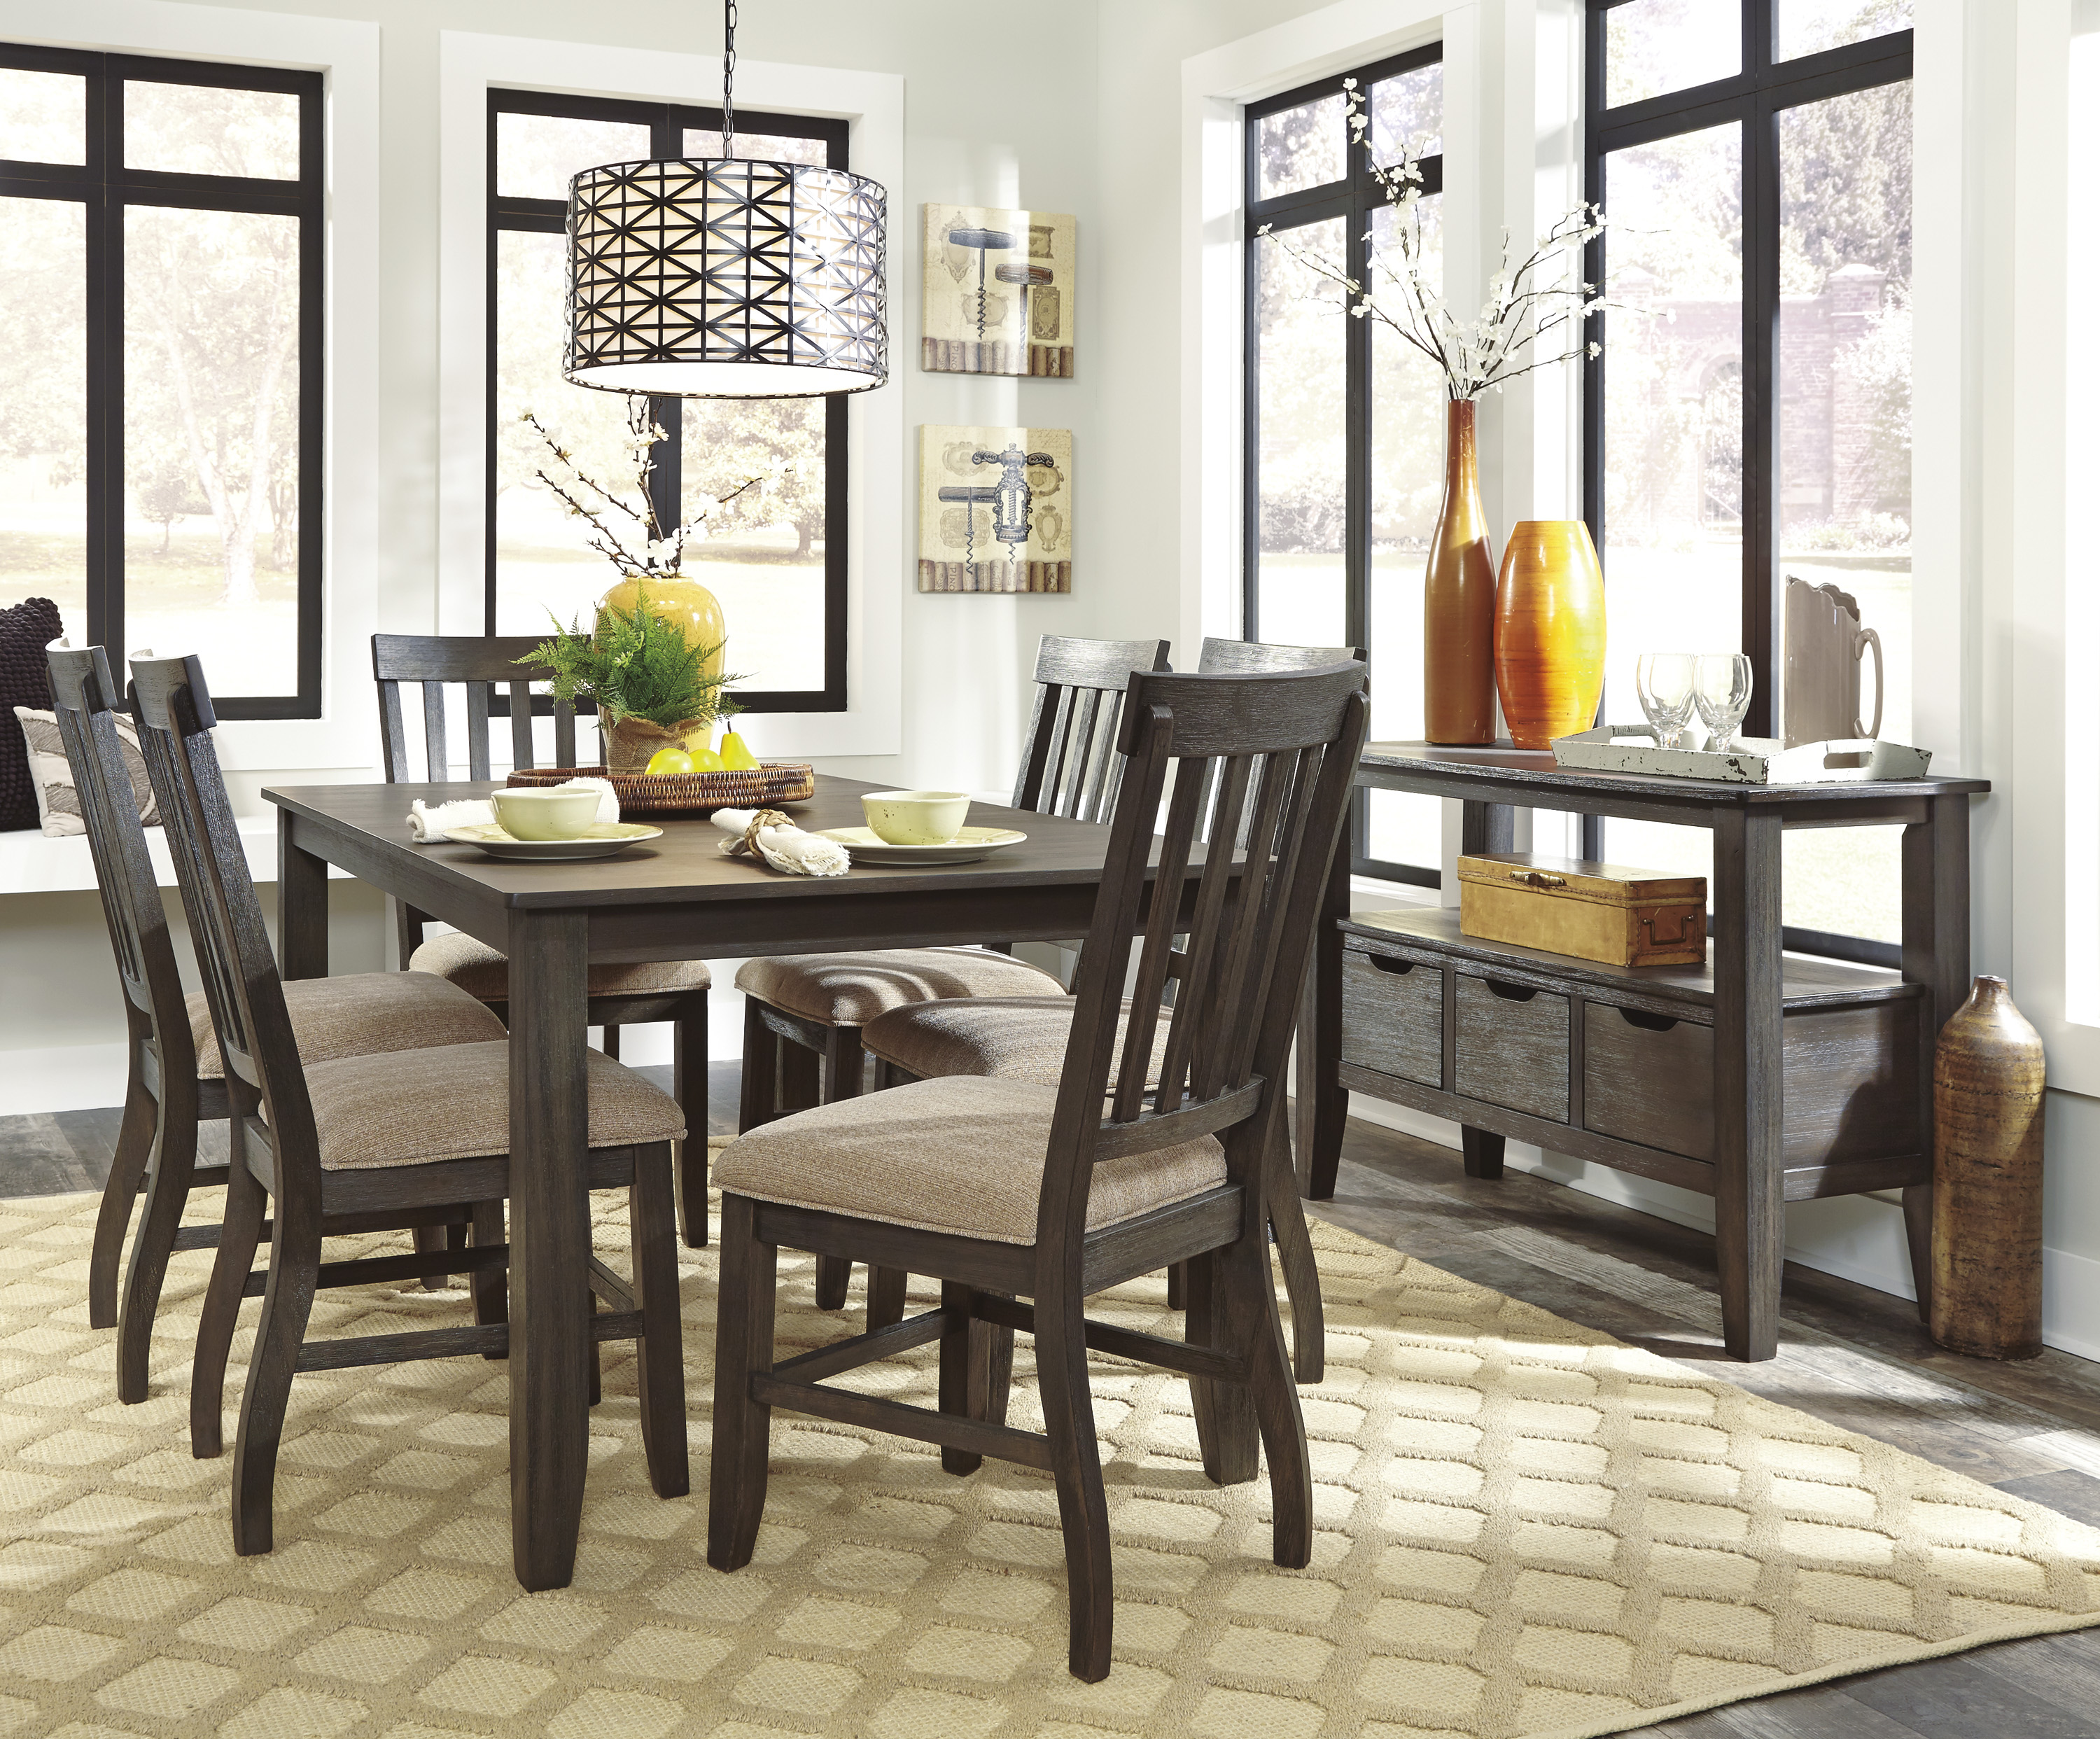 Dresbar Urbanology Grayish Brown 7pc Rectangle Dining Room